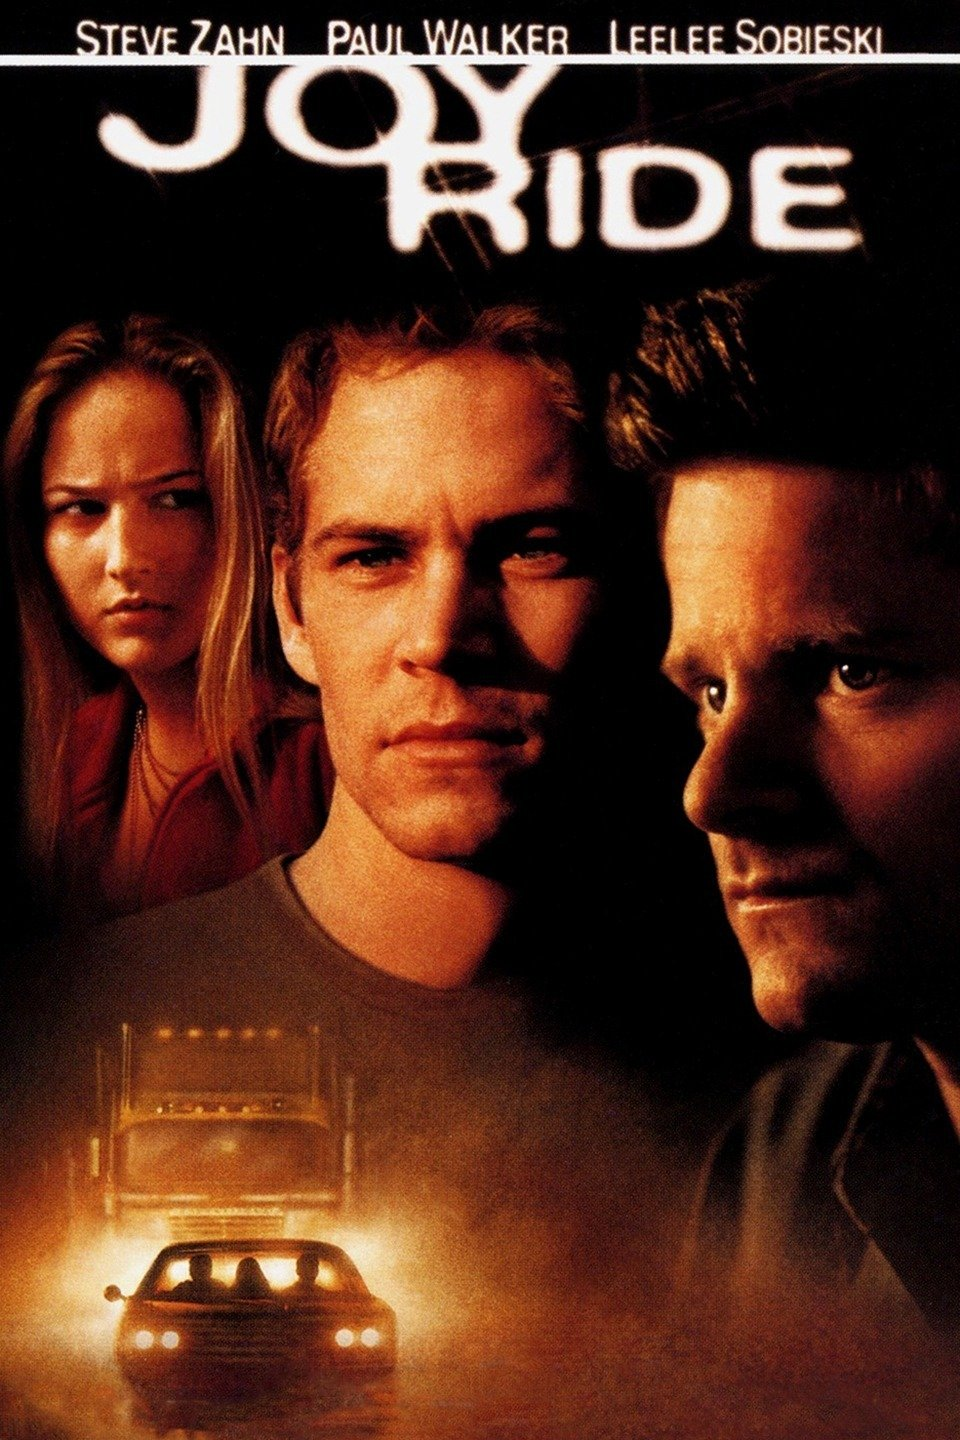 Joy Ride (2001) - Directed by: John DahlStarring: Steve Zahn, Paul Walker, Leelee Sobieski, Jessica BowmanRated: R for Violence/Terror and LanguageRunning Time: 1 h 37 mTMM Score: 3.5 stars out of 5STRENGTHS: Writing, Acting, ToneWEAKNESSES: Predictable